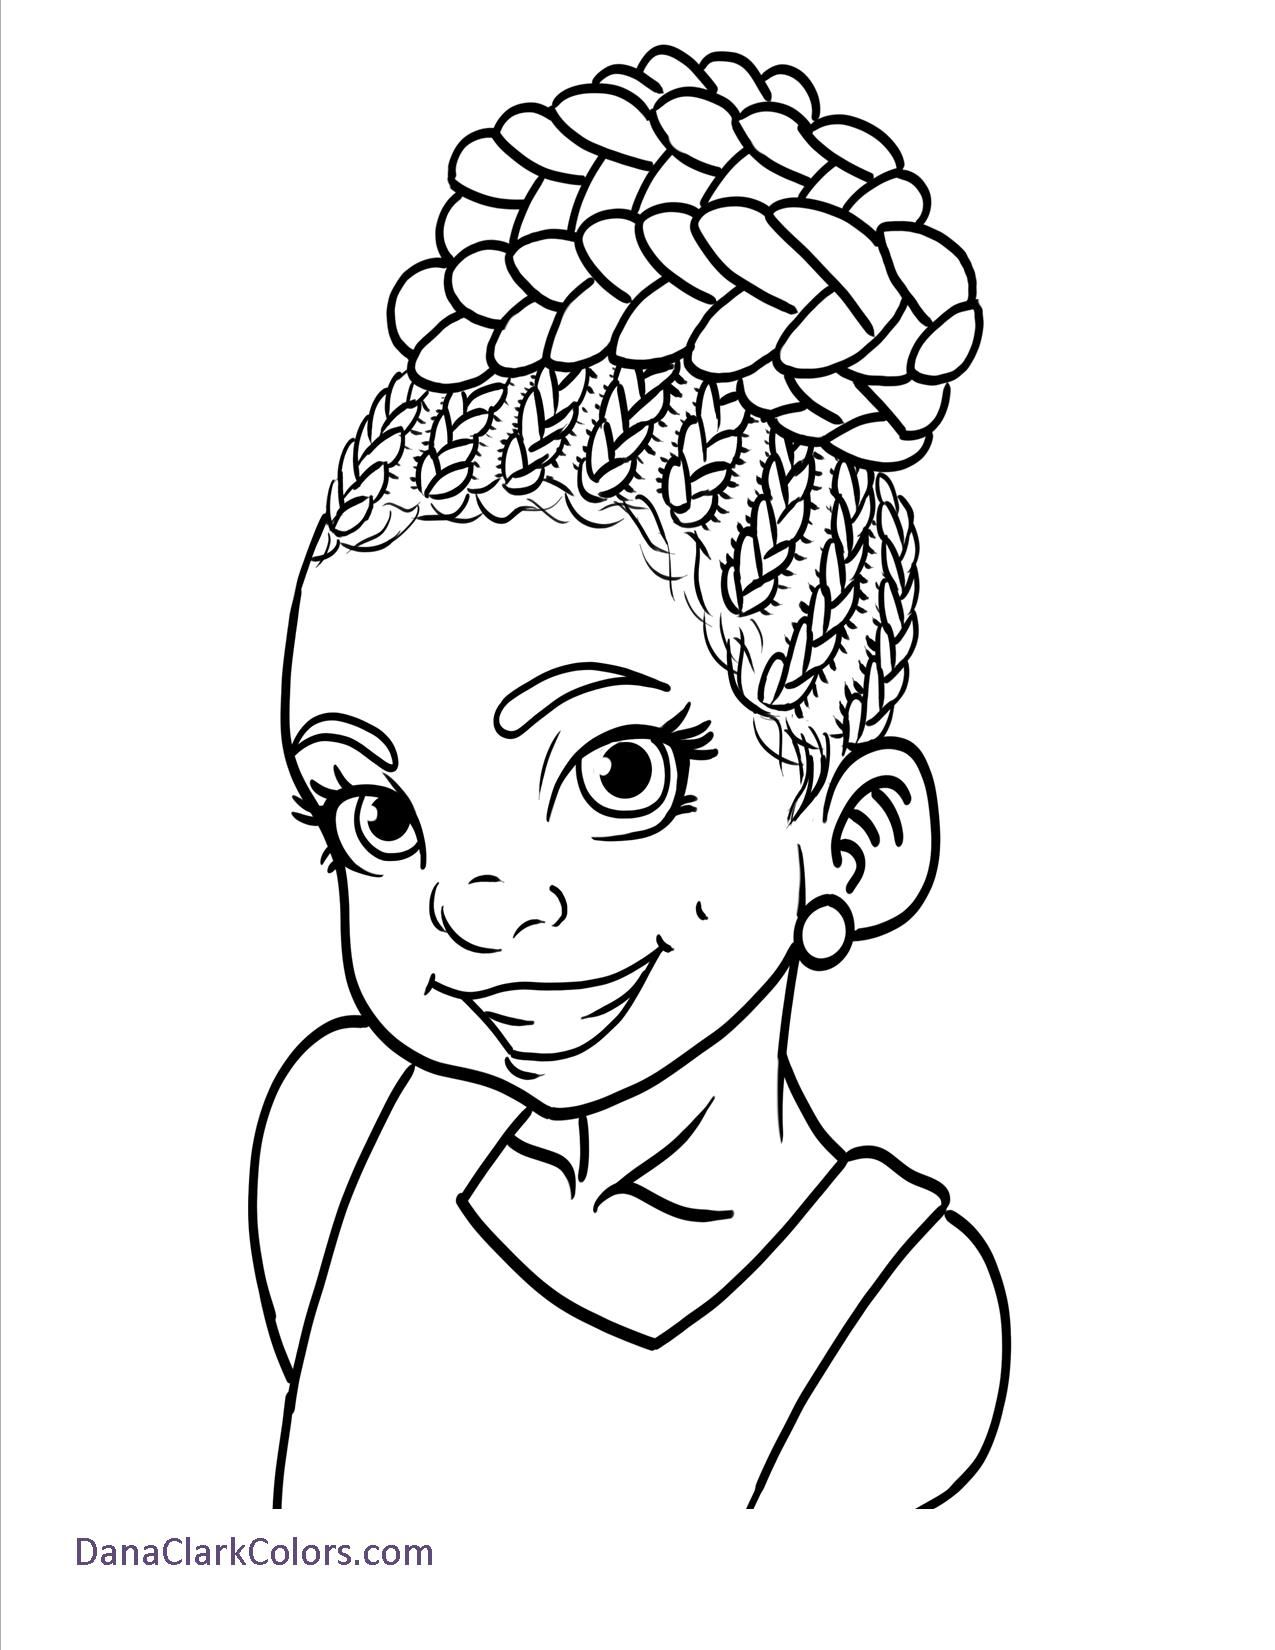 Childrens coloring sheet of a rag doll - Black Kids Coloring Page Africanamericancoloringpages